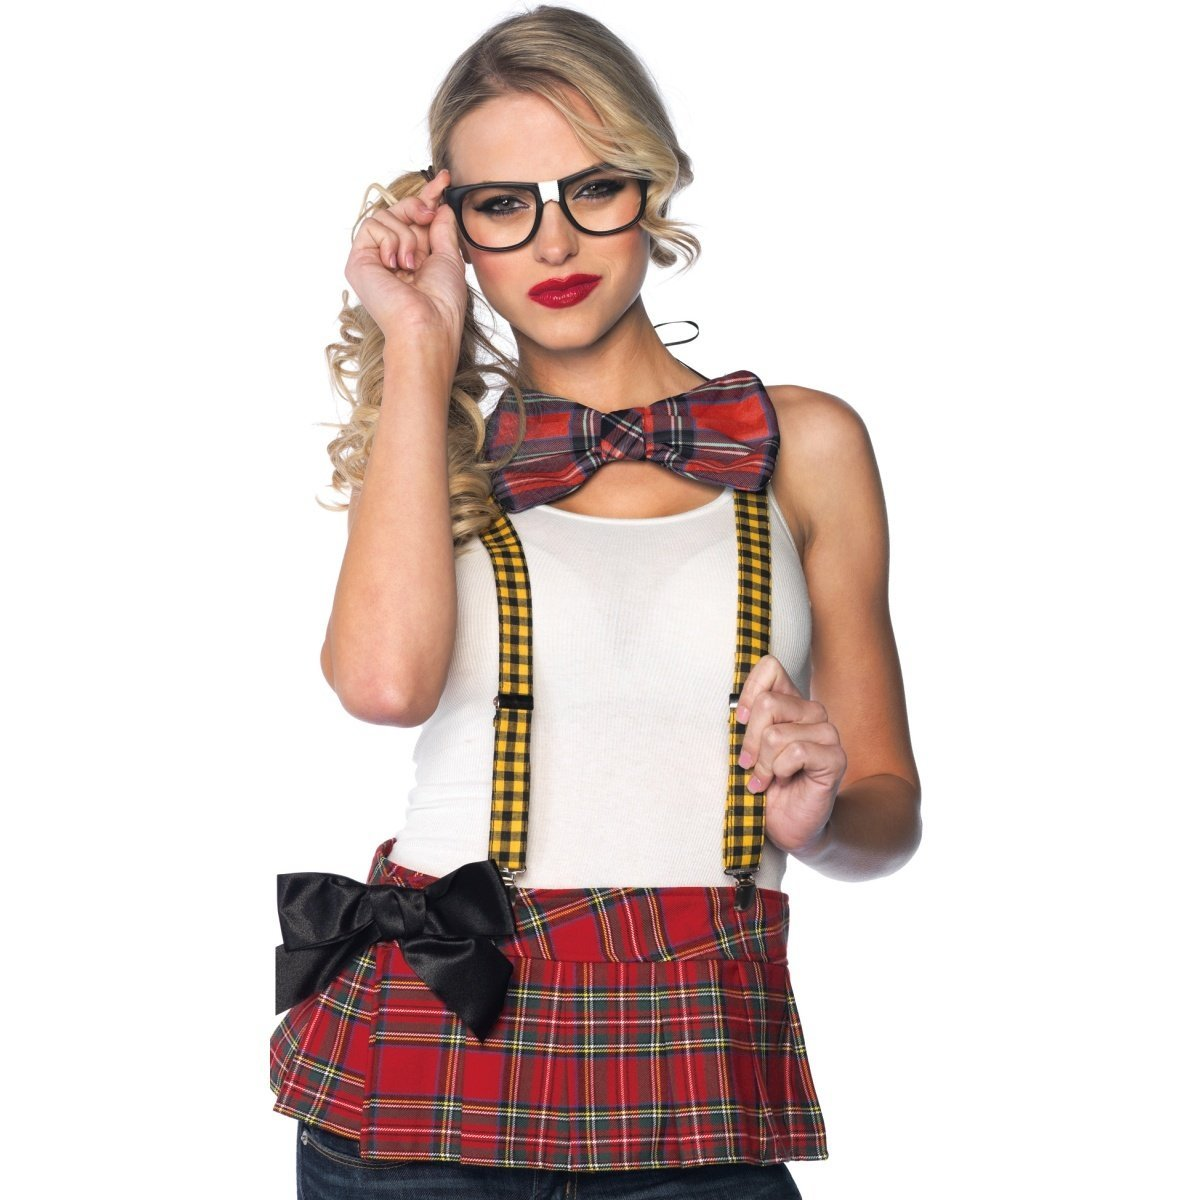 geek costumes for girls 2